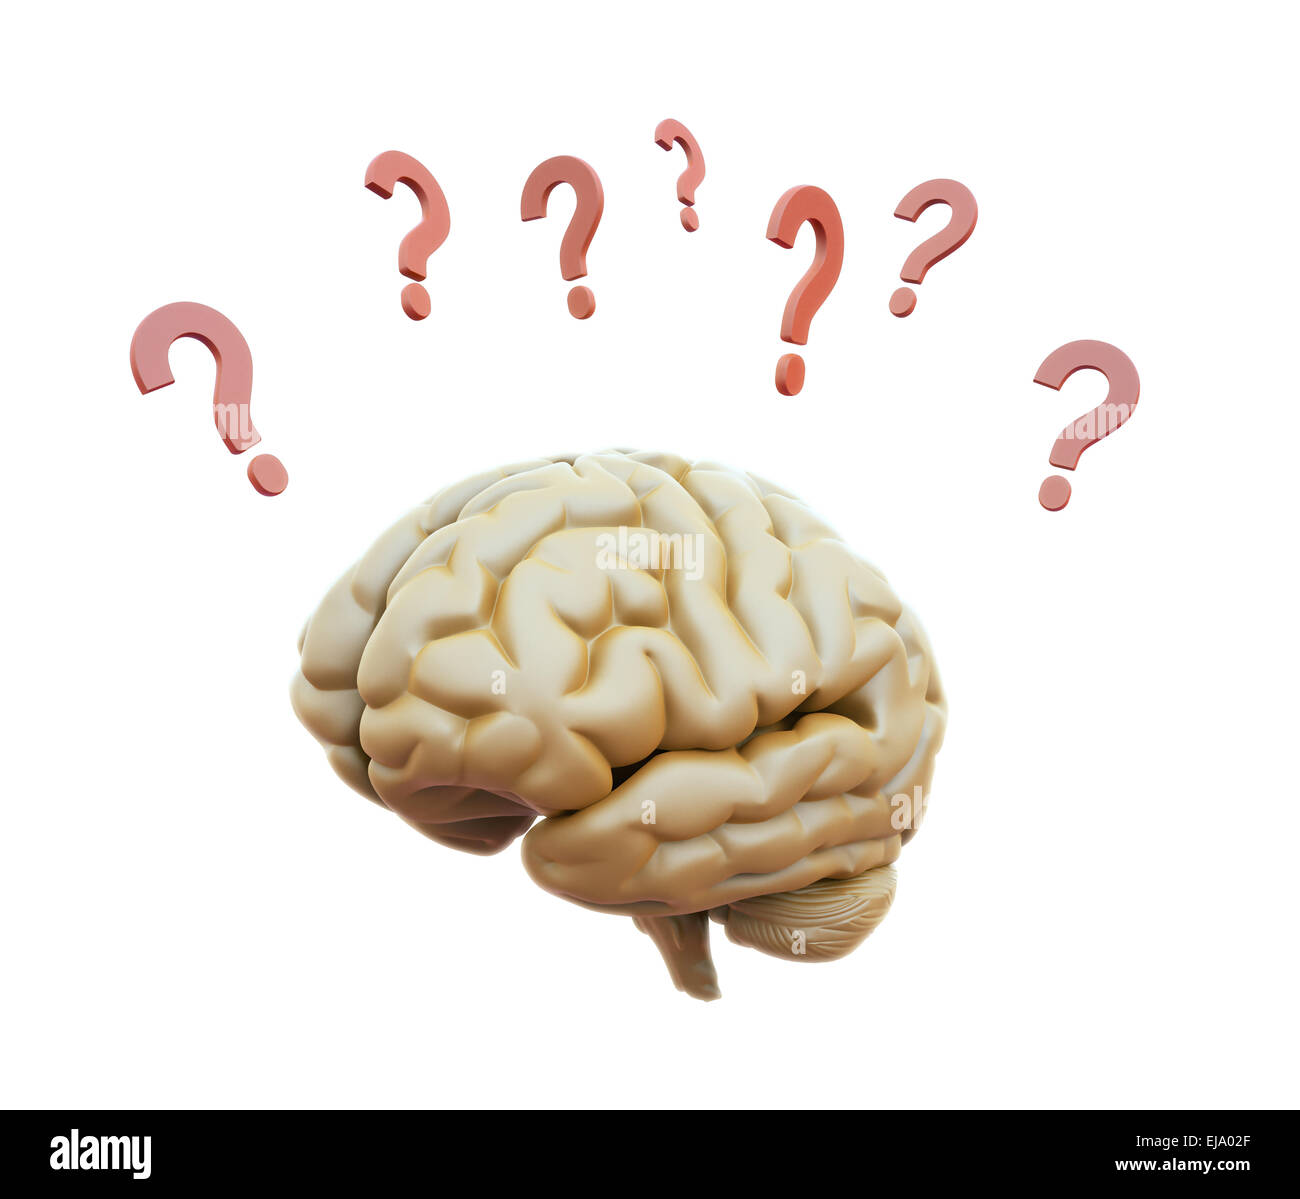 Human brain surrounded with question marks - Stock Image